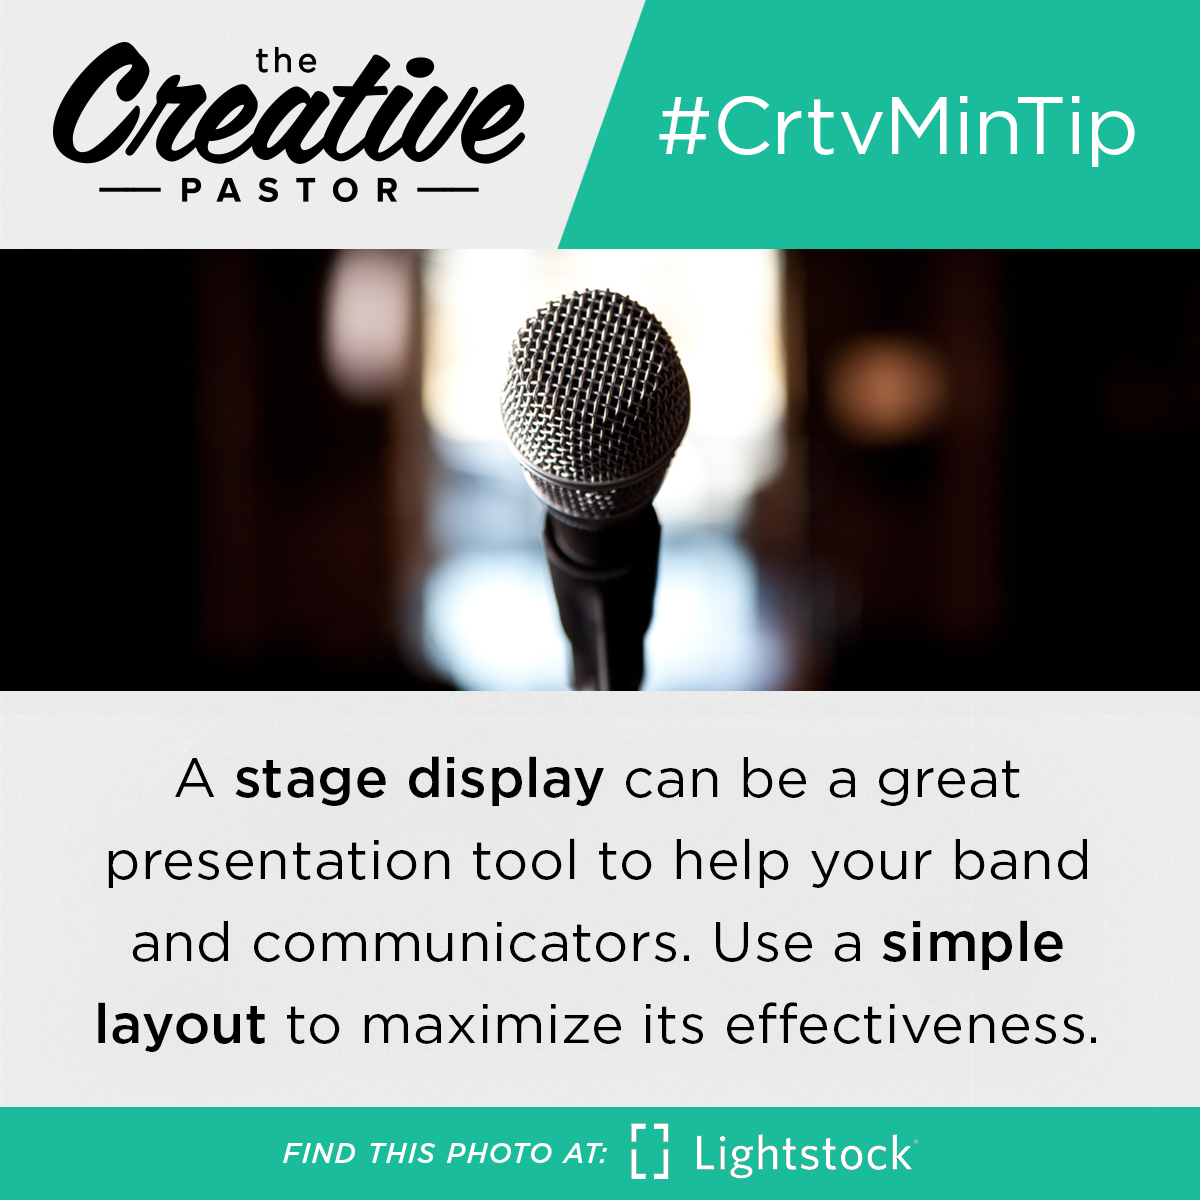 #CrtvMinTip: A stage display can be a great presentation tool to help your band and communicators. Use a simple layout to maximize its effectiveness.